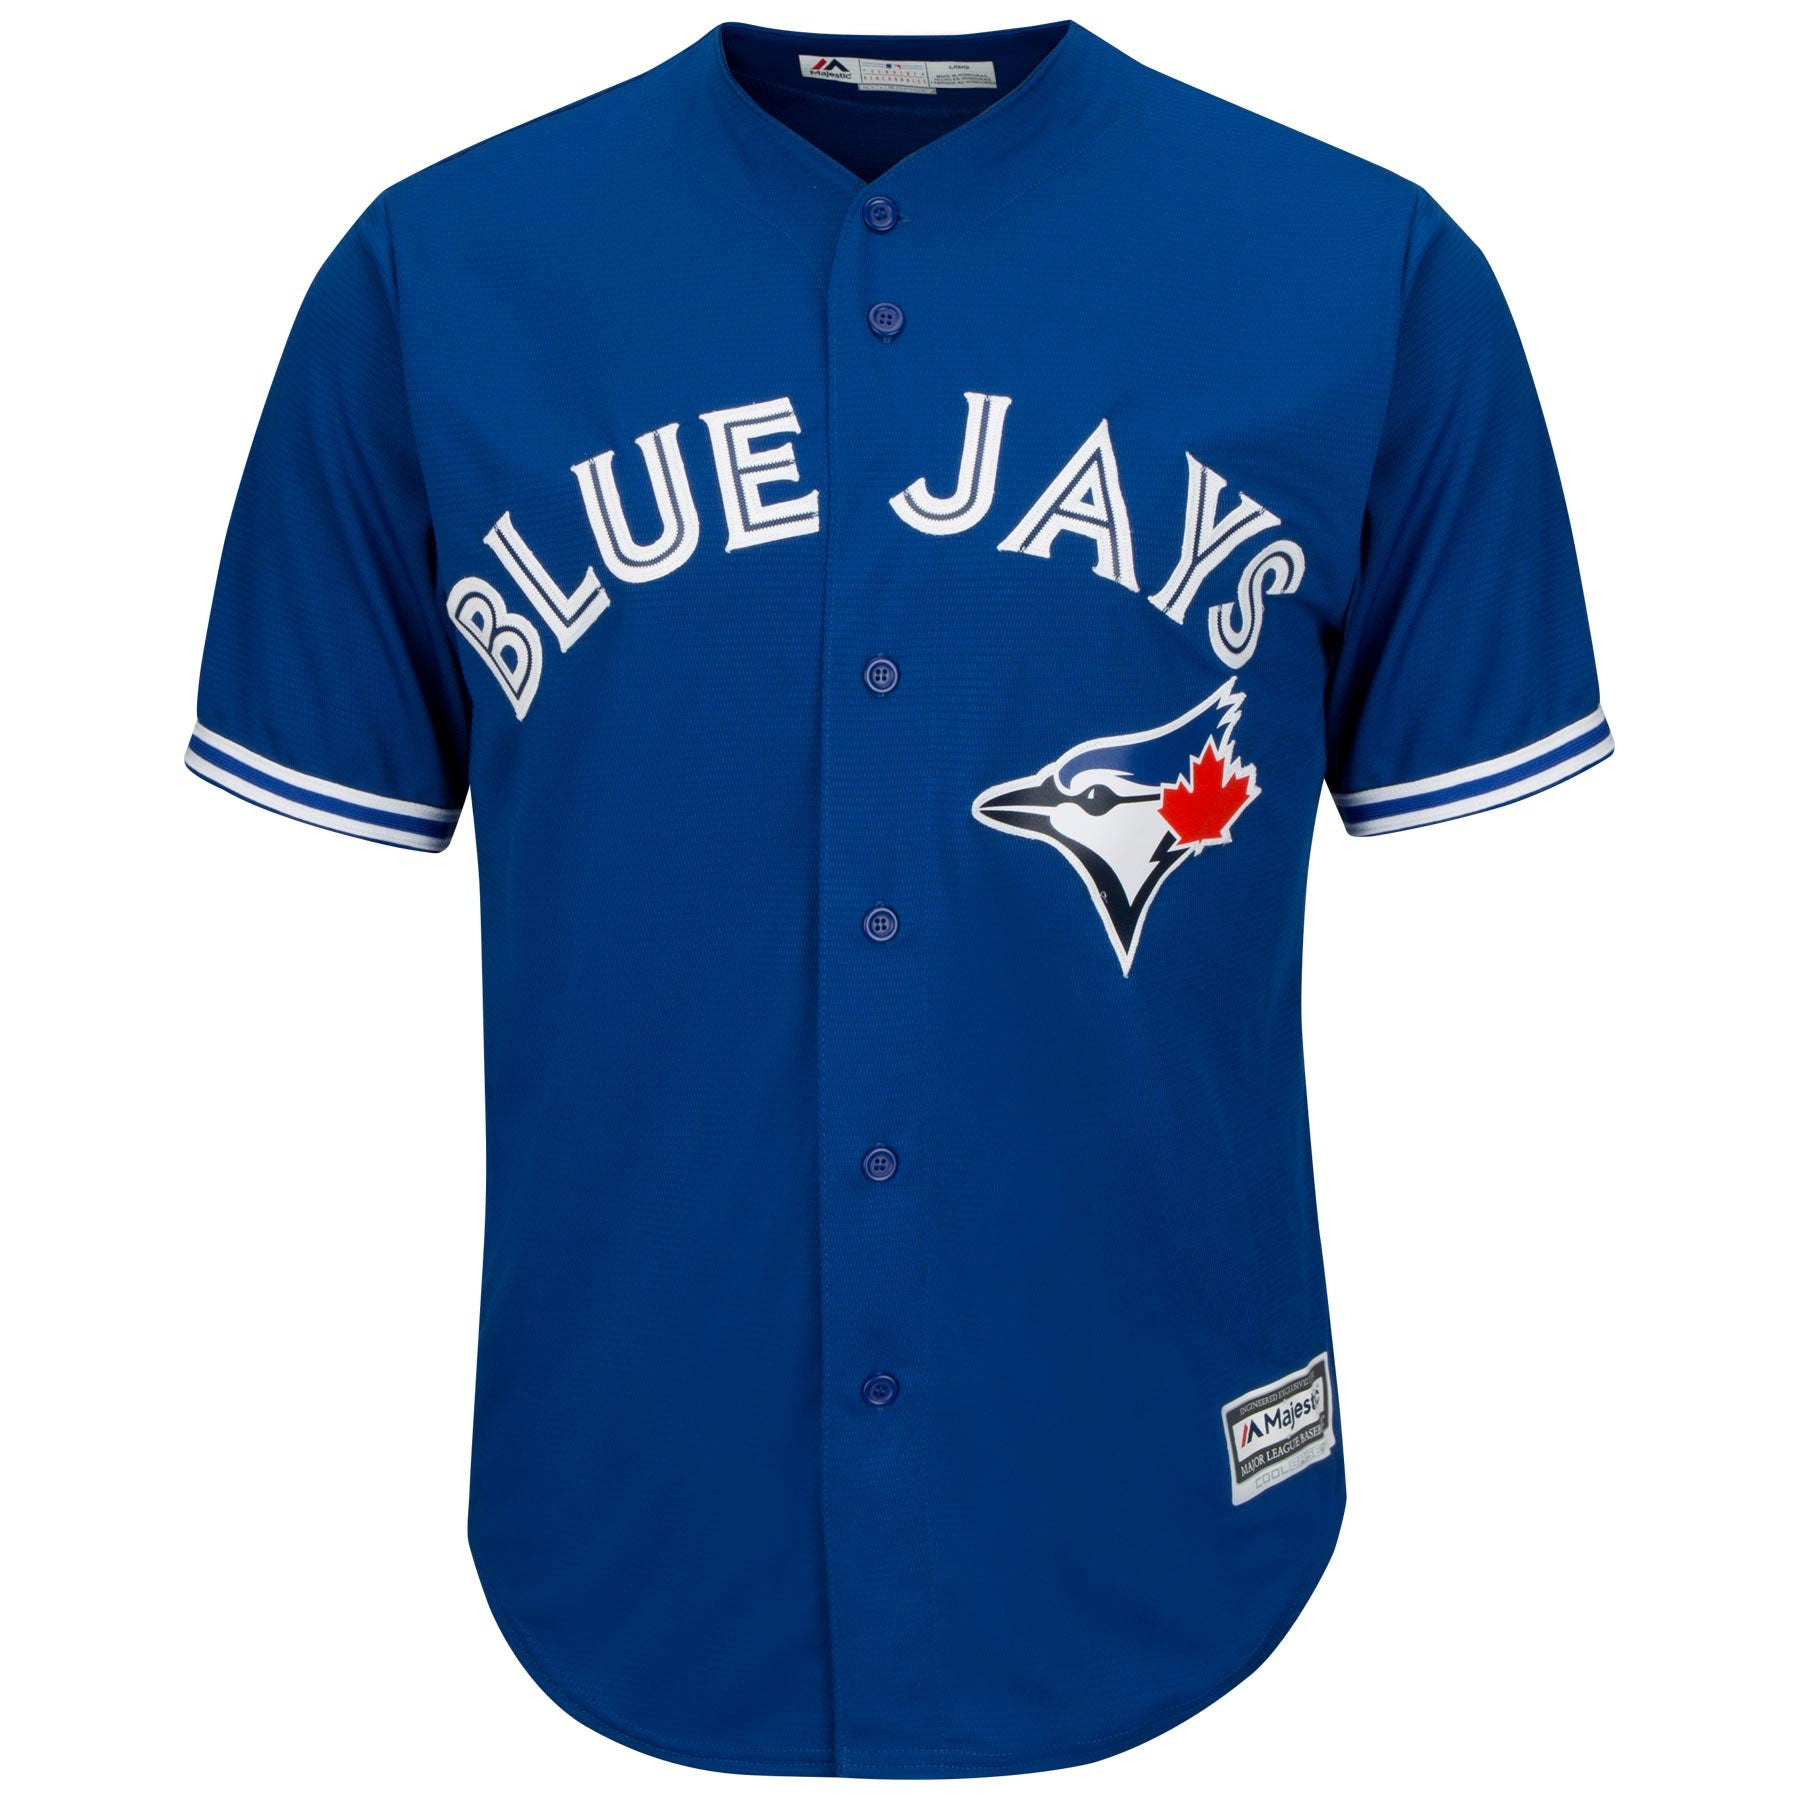 Toronto Blue Jays Youth Russell Martin Alternate Stitched On Jersey by Majestic